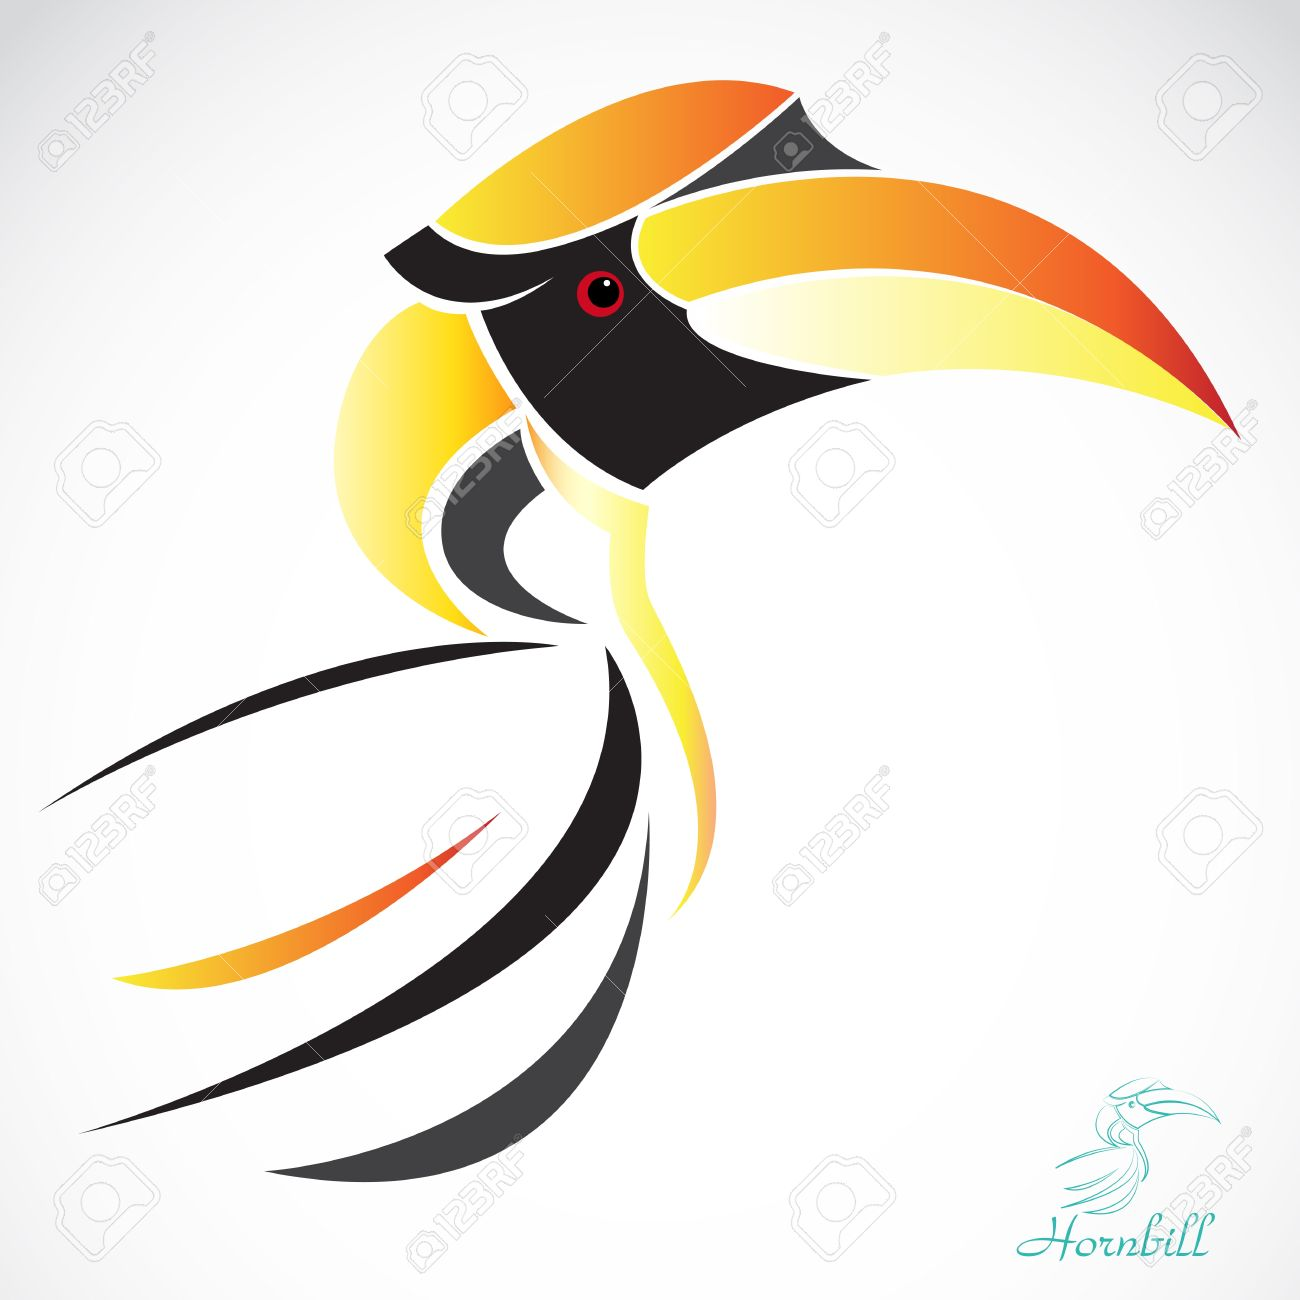 Hornbill clipart #12, Download drawings